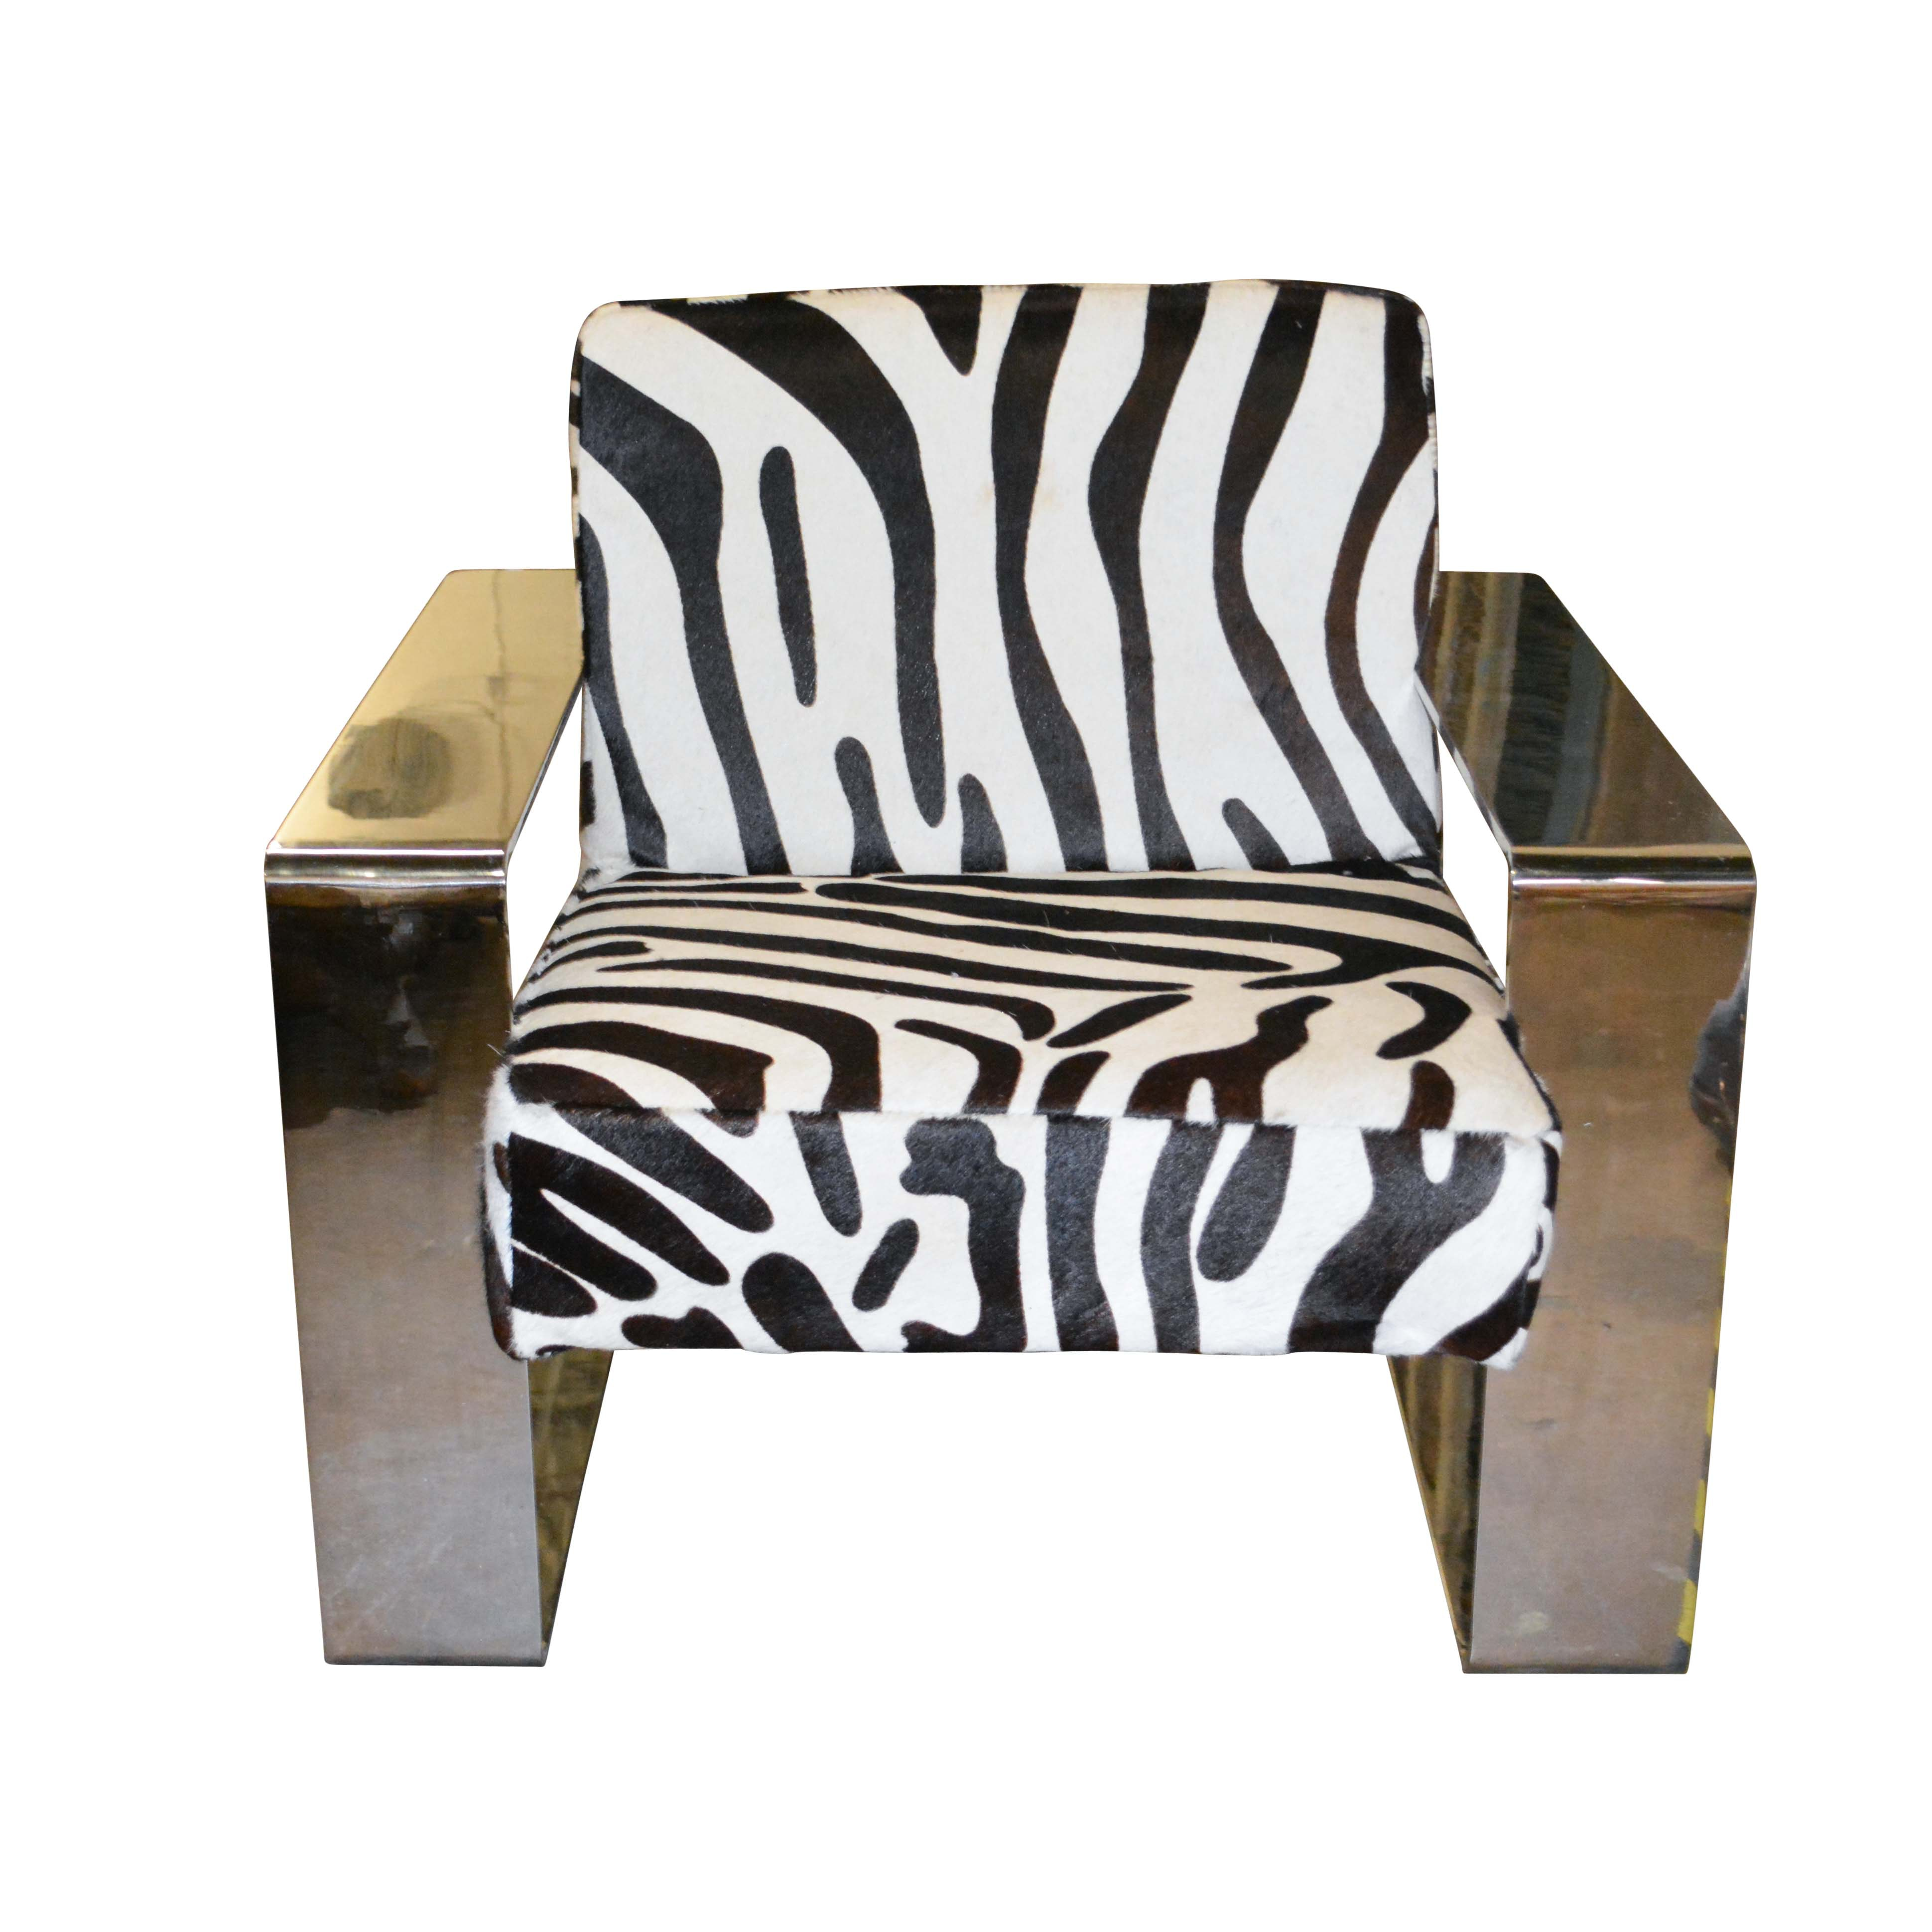 Silver Metal Cantilever Lounge Chair With Zebra Print Upholstery ...